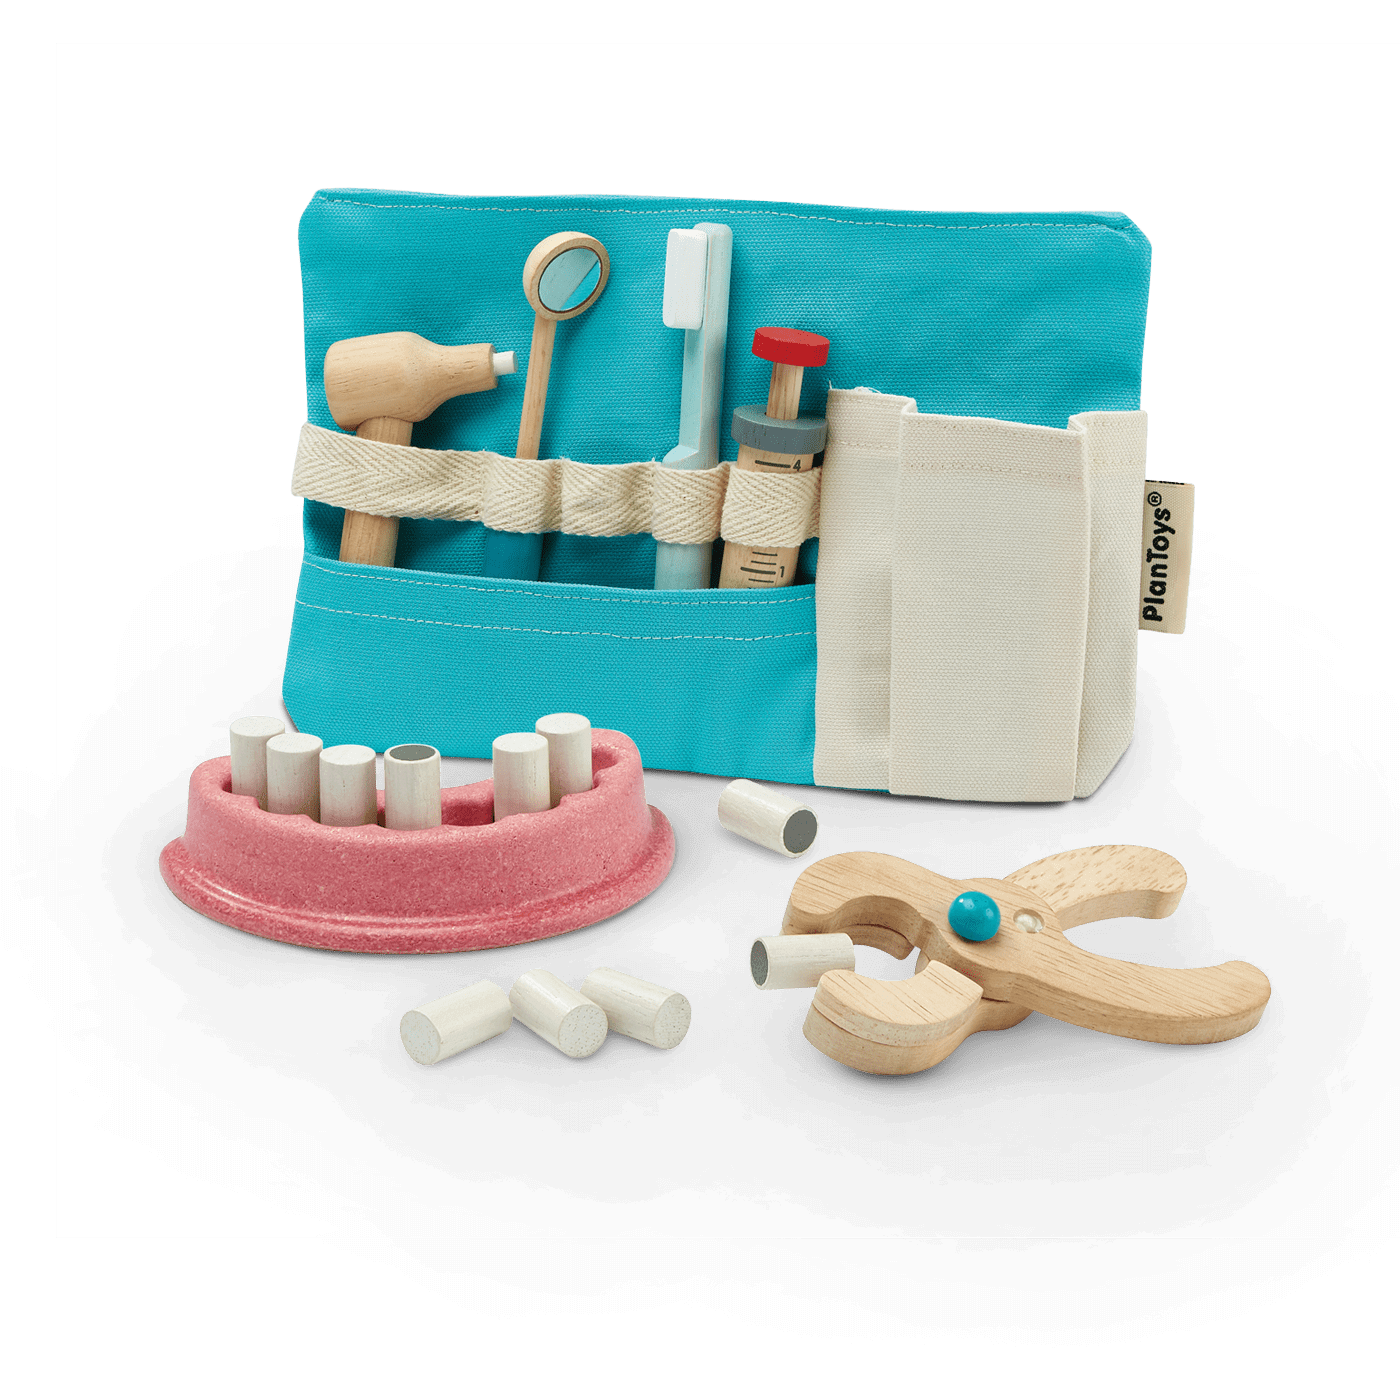 3493_PlanToys_DENTIST_SET_Pretend_Play_Coordination_Fine_Motor_Imagination_Social_Language_and_Communications_3yrs_Wooden_toys_Education_toys_Safety_Toys_Non-toxic_0.png